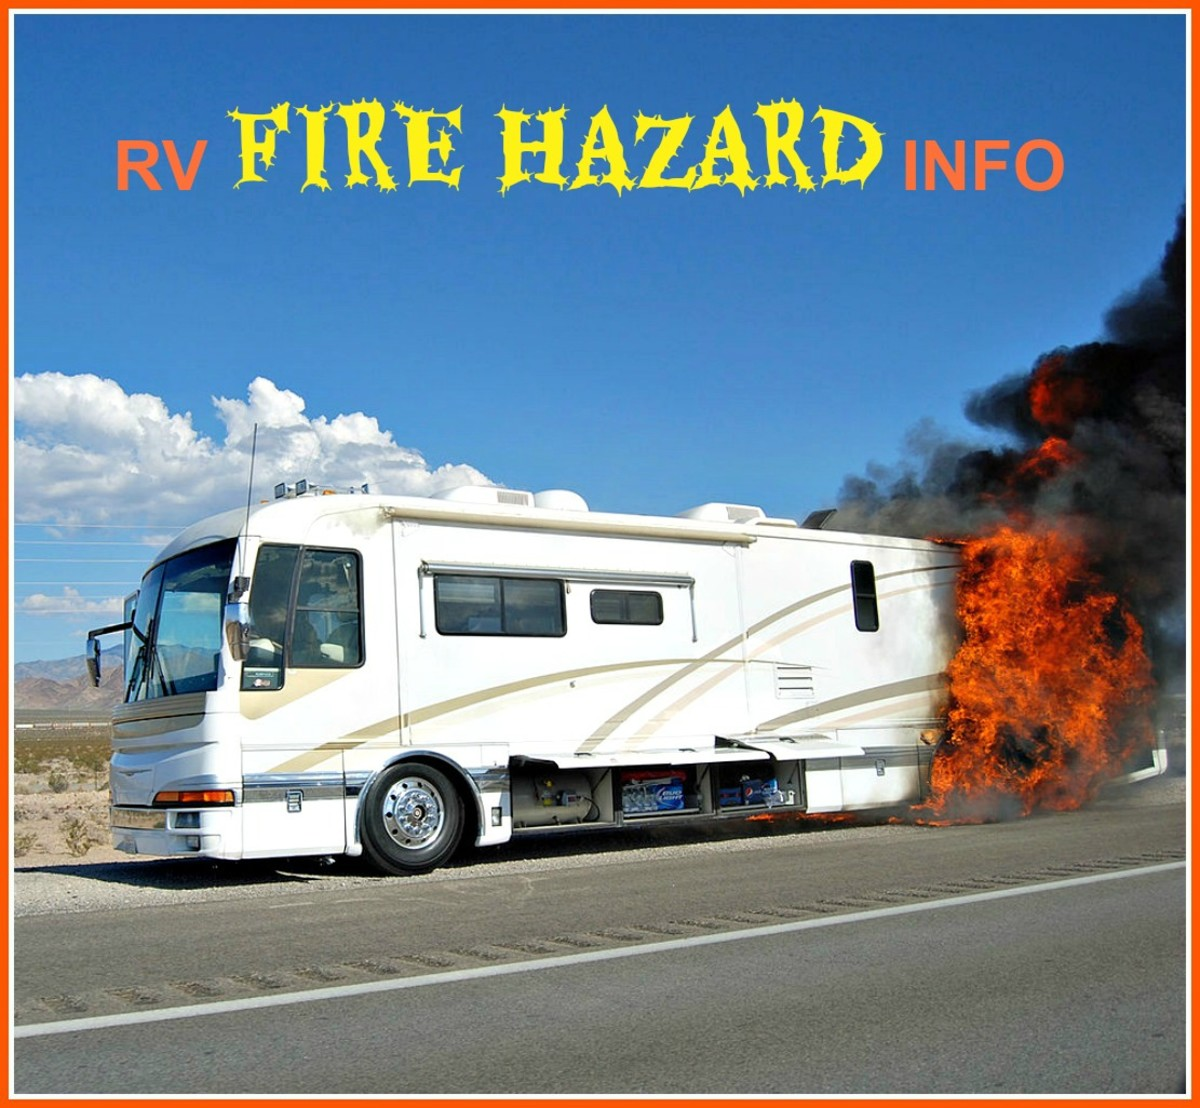 Learn the causes of RV fires, how to avoid them and what to do if your coach catches fire.